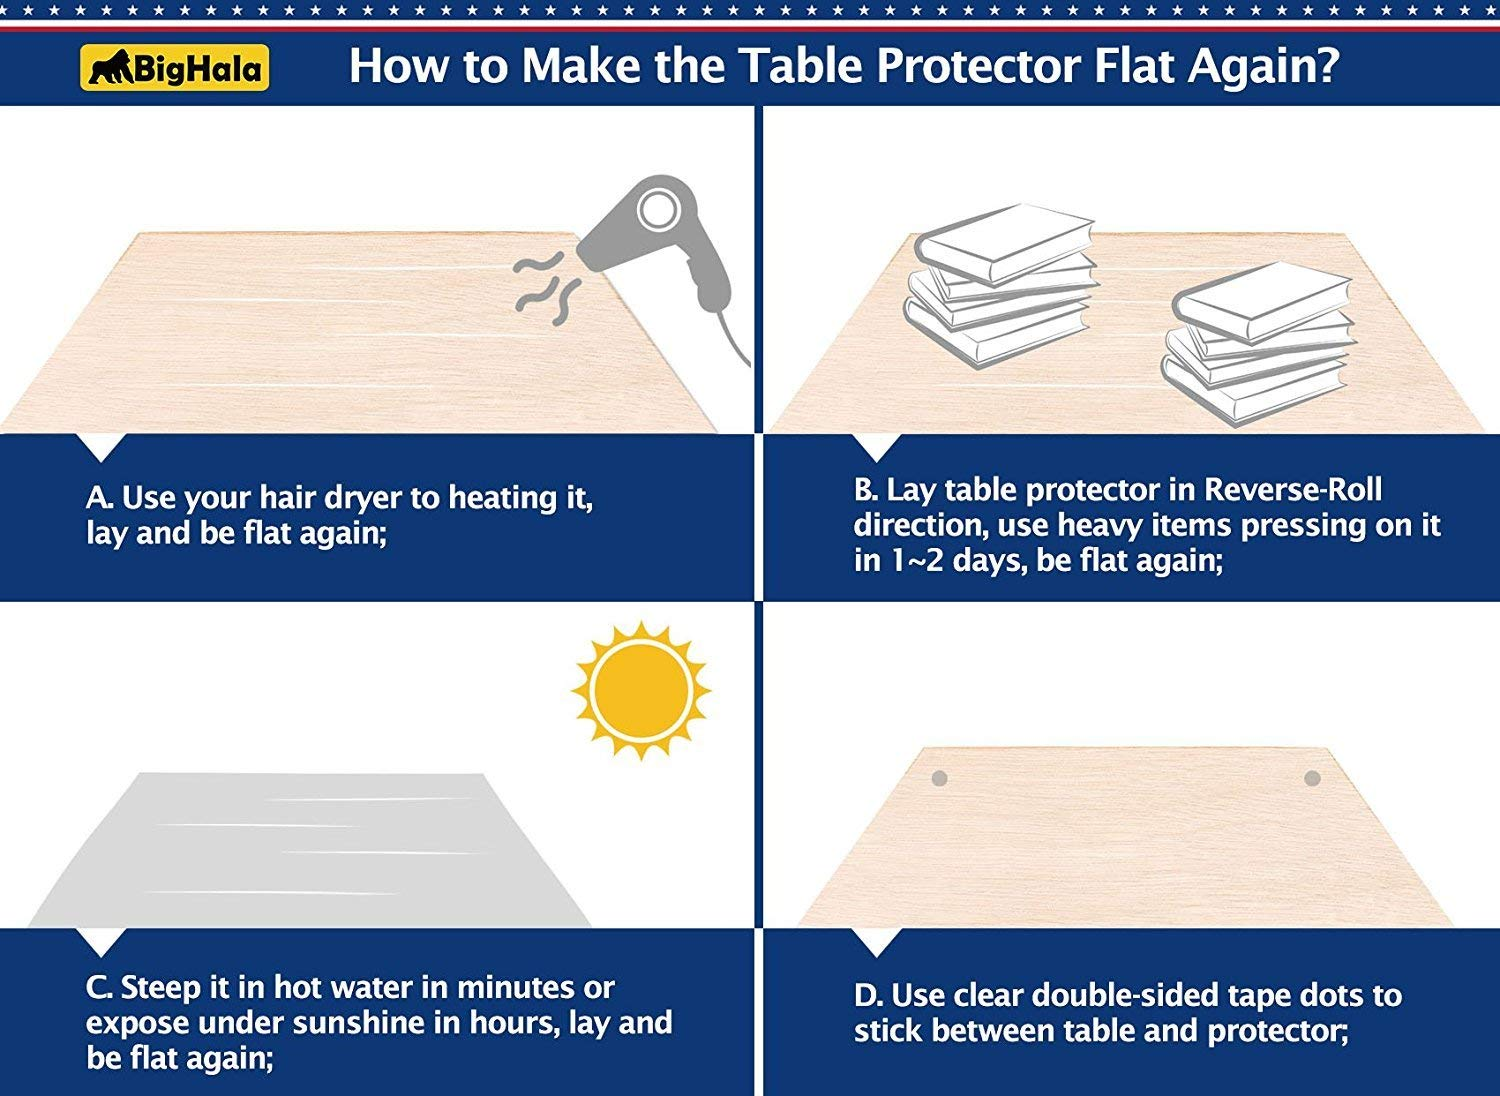 36 X 60 Inch Clear Plastic Tablecloth Table Protector Eco Thicken Protective Desk Blotter Mat Cover Waterproof Wipeable Tablecloth Roll Easy Clean PVC Vinyl Dining Coffee Tabletop Protection Liner Pad by BigHala (Image #7)